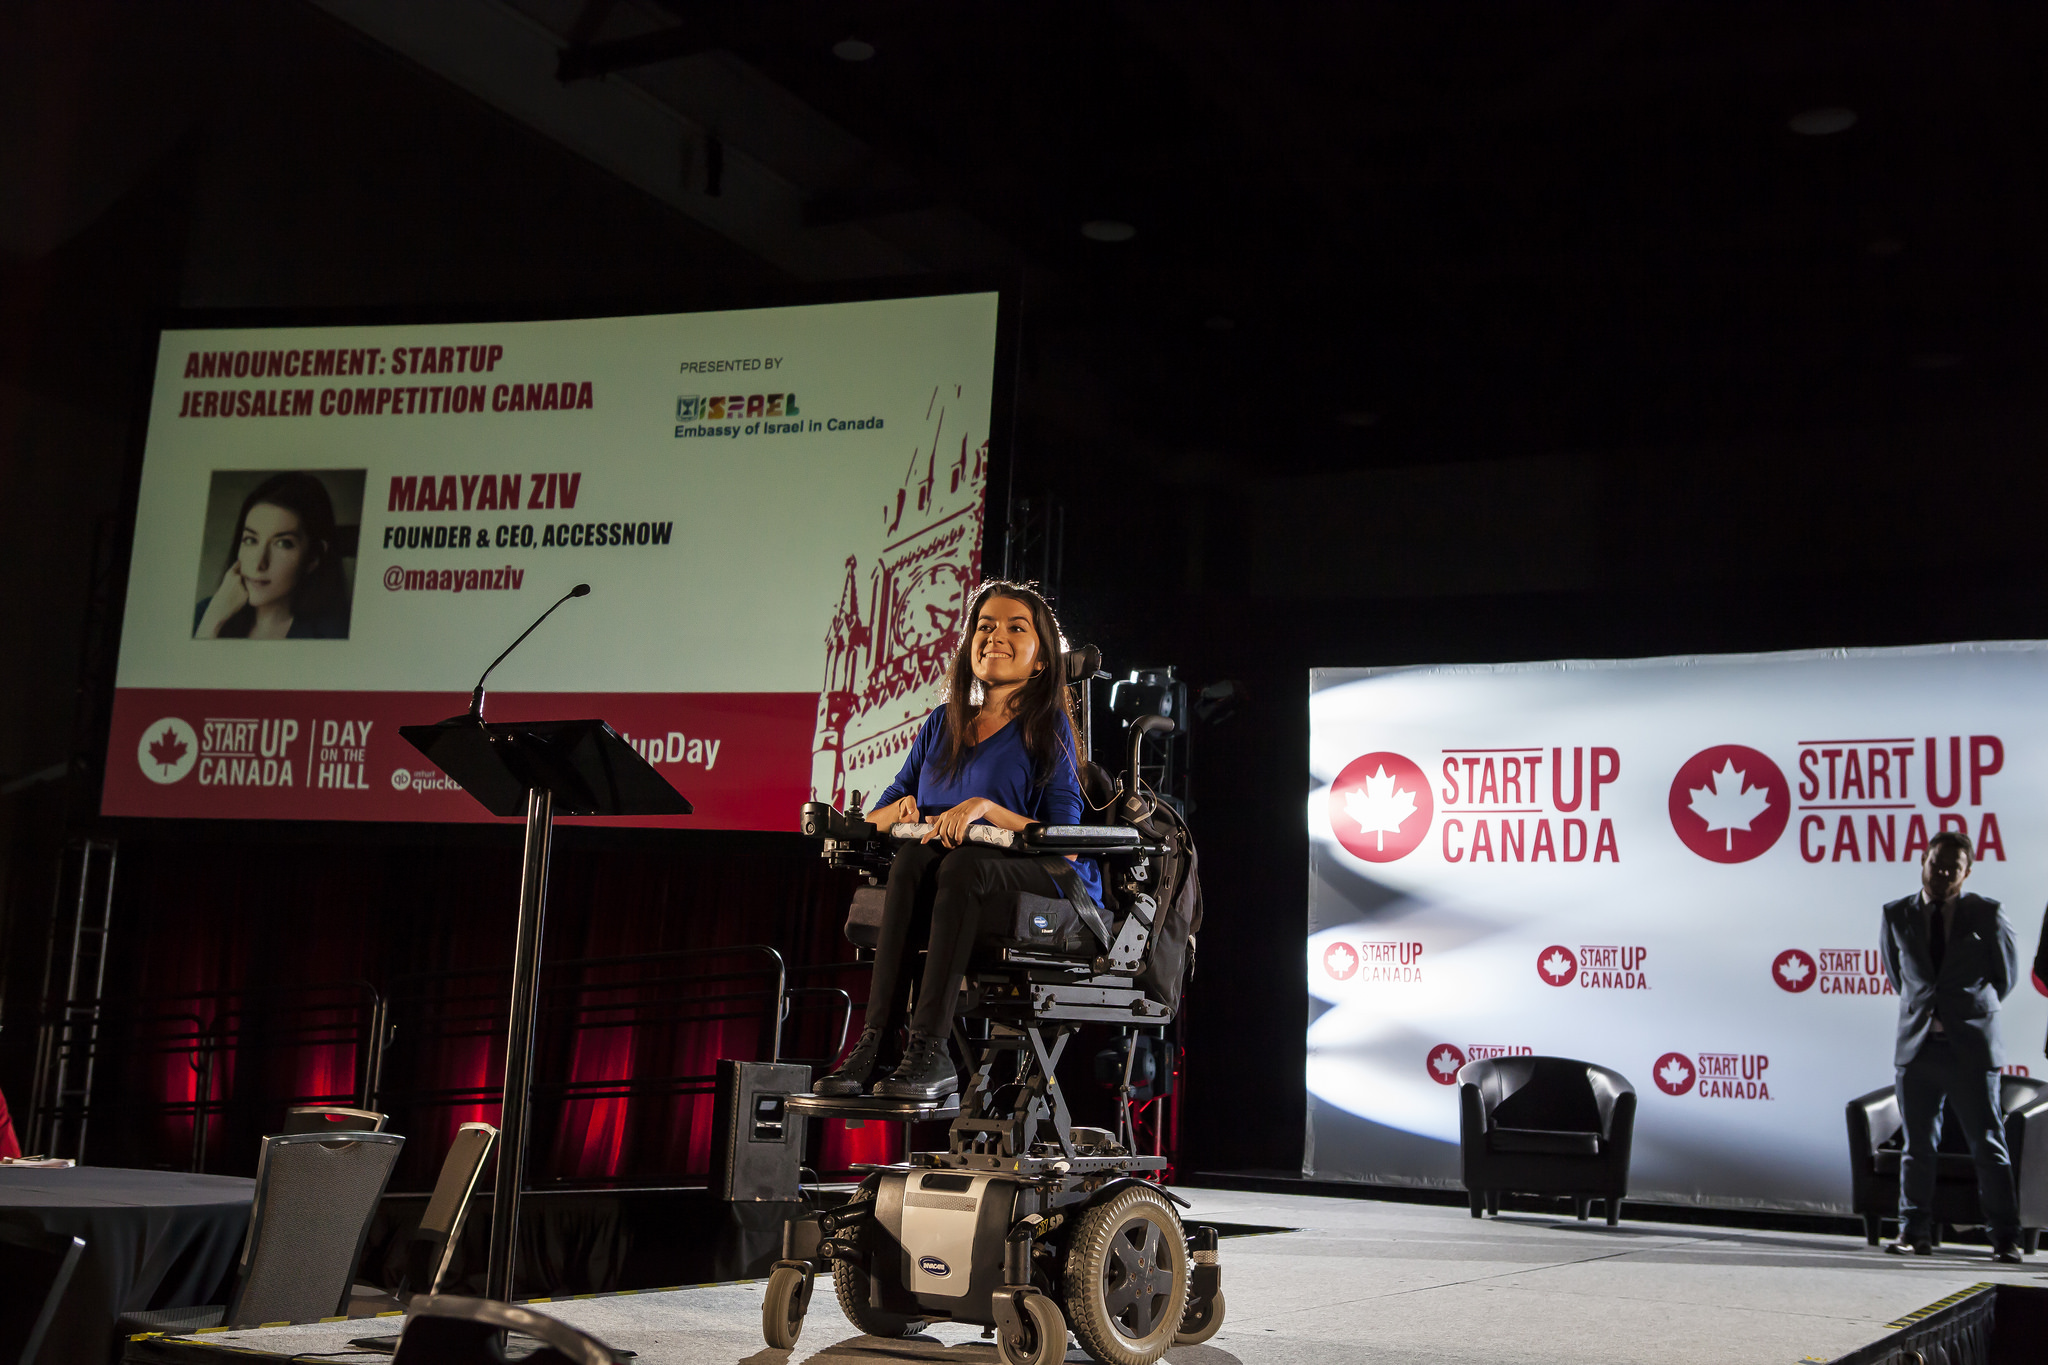 """maayan smiles on stage at the startup canada day on the hill event. behind her is a large screen that reads """"Announcement: Startup Jerusalem Competition Canada"""" in red"""